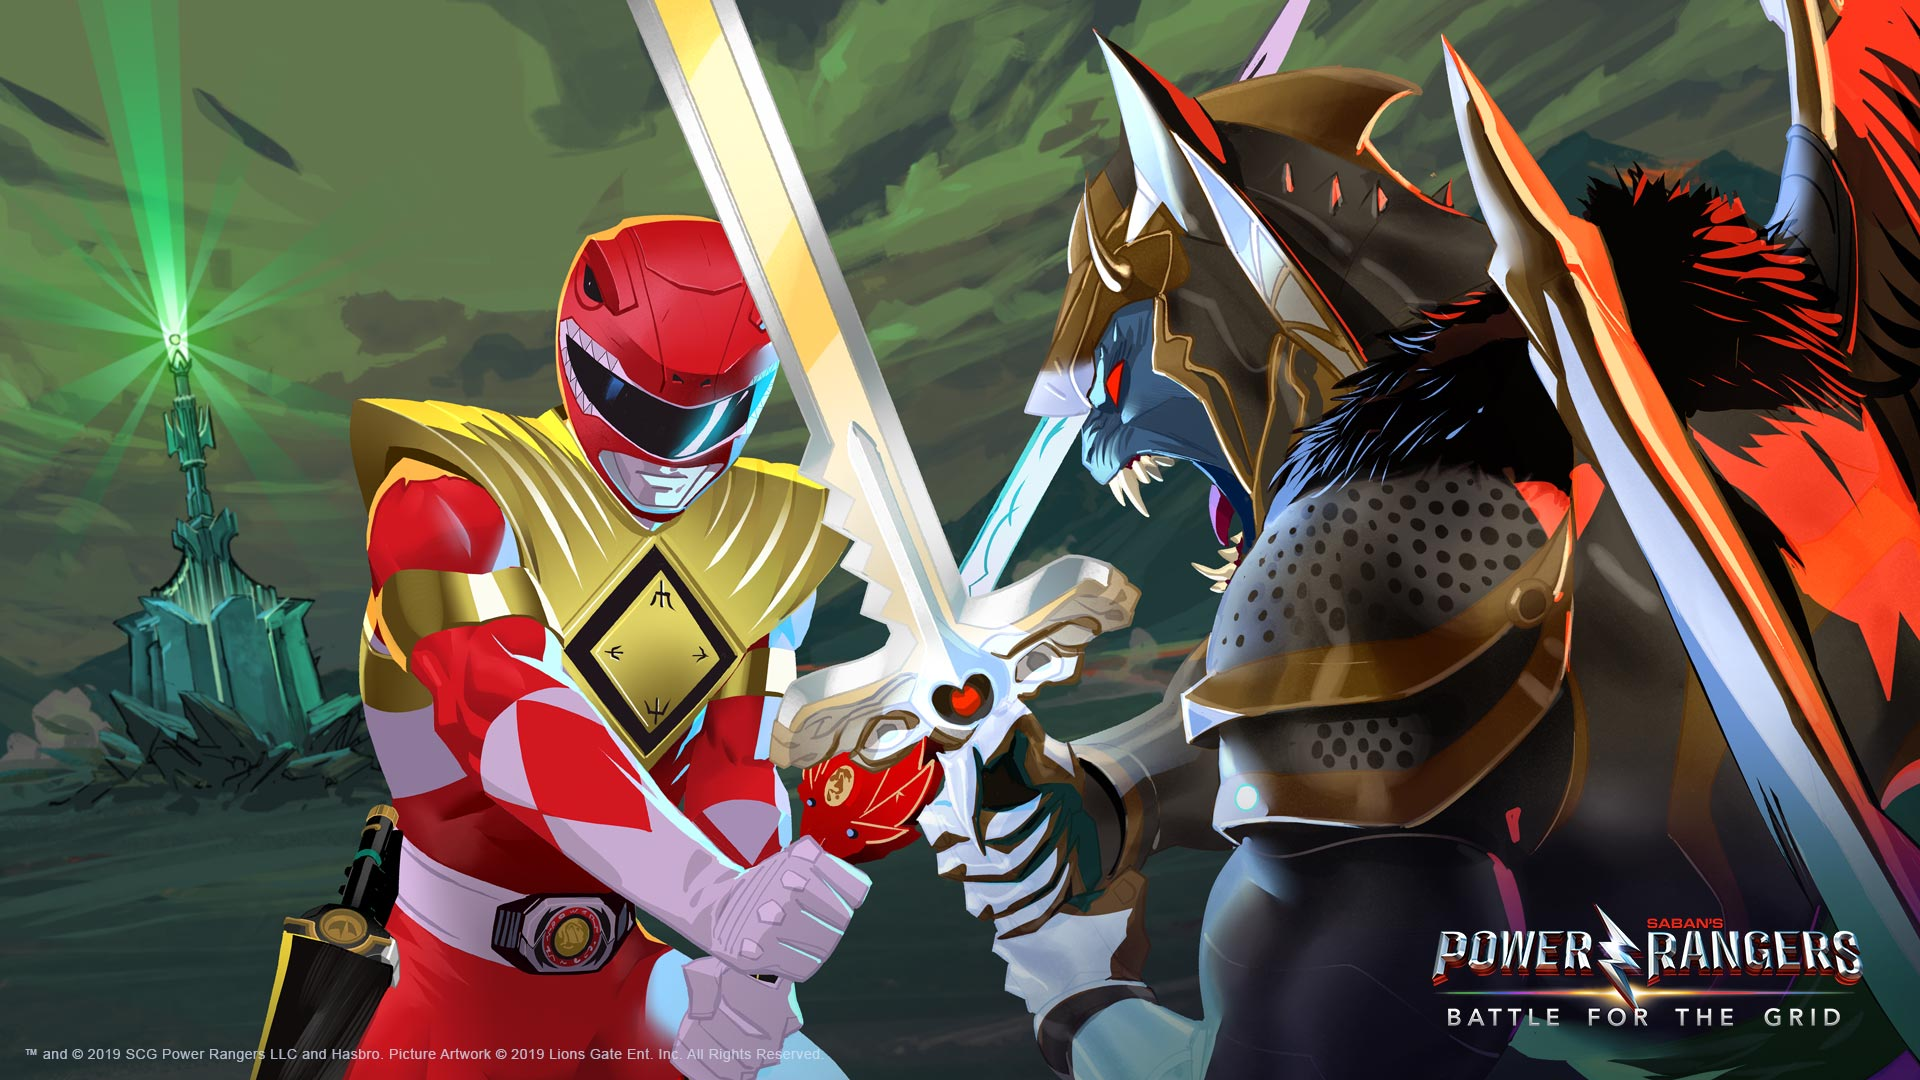 Power Rangers Lord Zedd 4 out of 6 image gallery